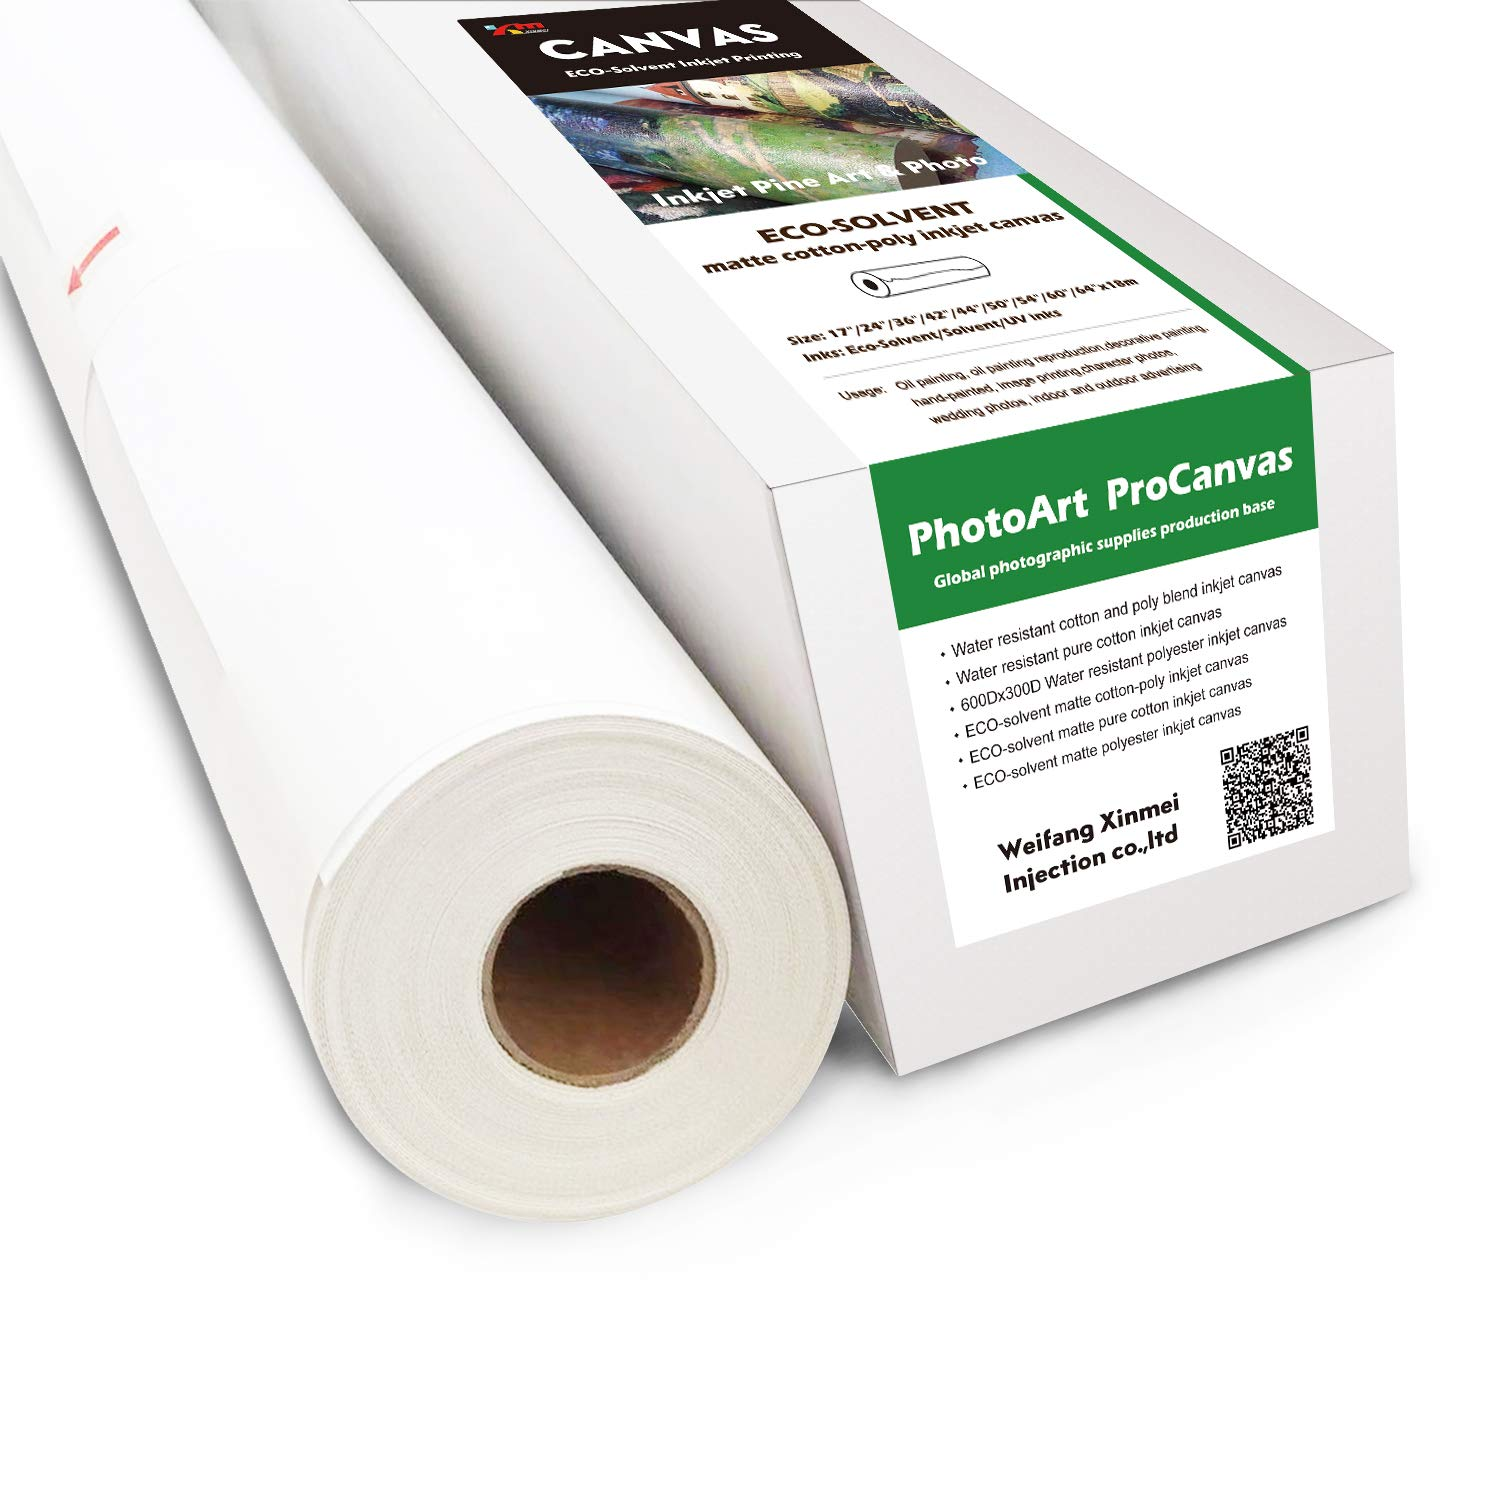 Eco-Solvent Matte Cotton & Poly Blend Inkjet Canvas (42'' x 60'(Pack of 4)) by Sheepcamel